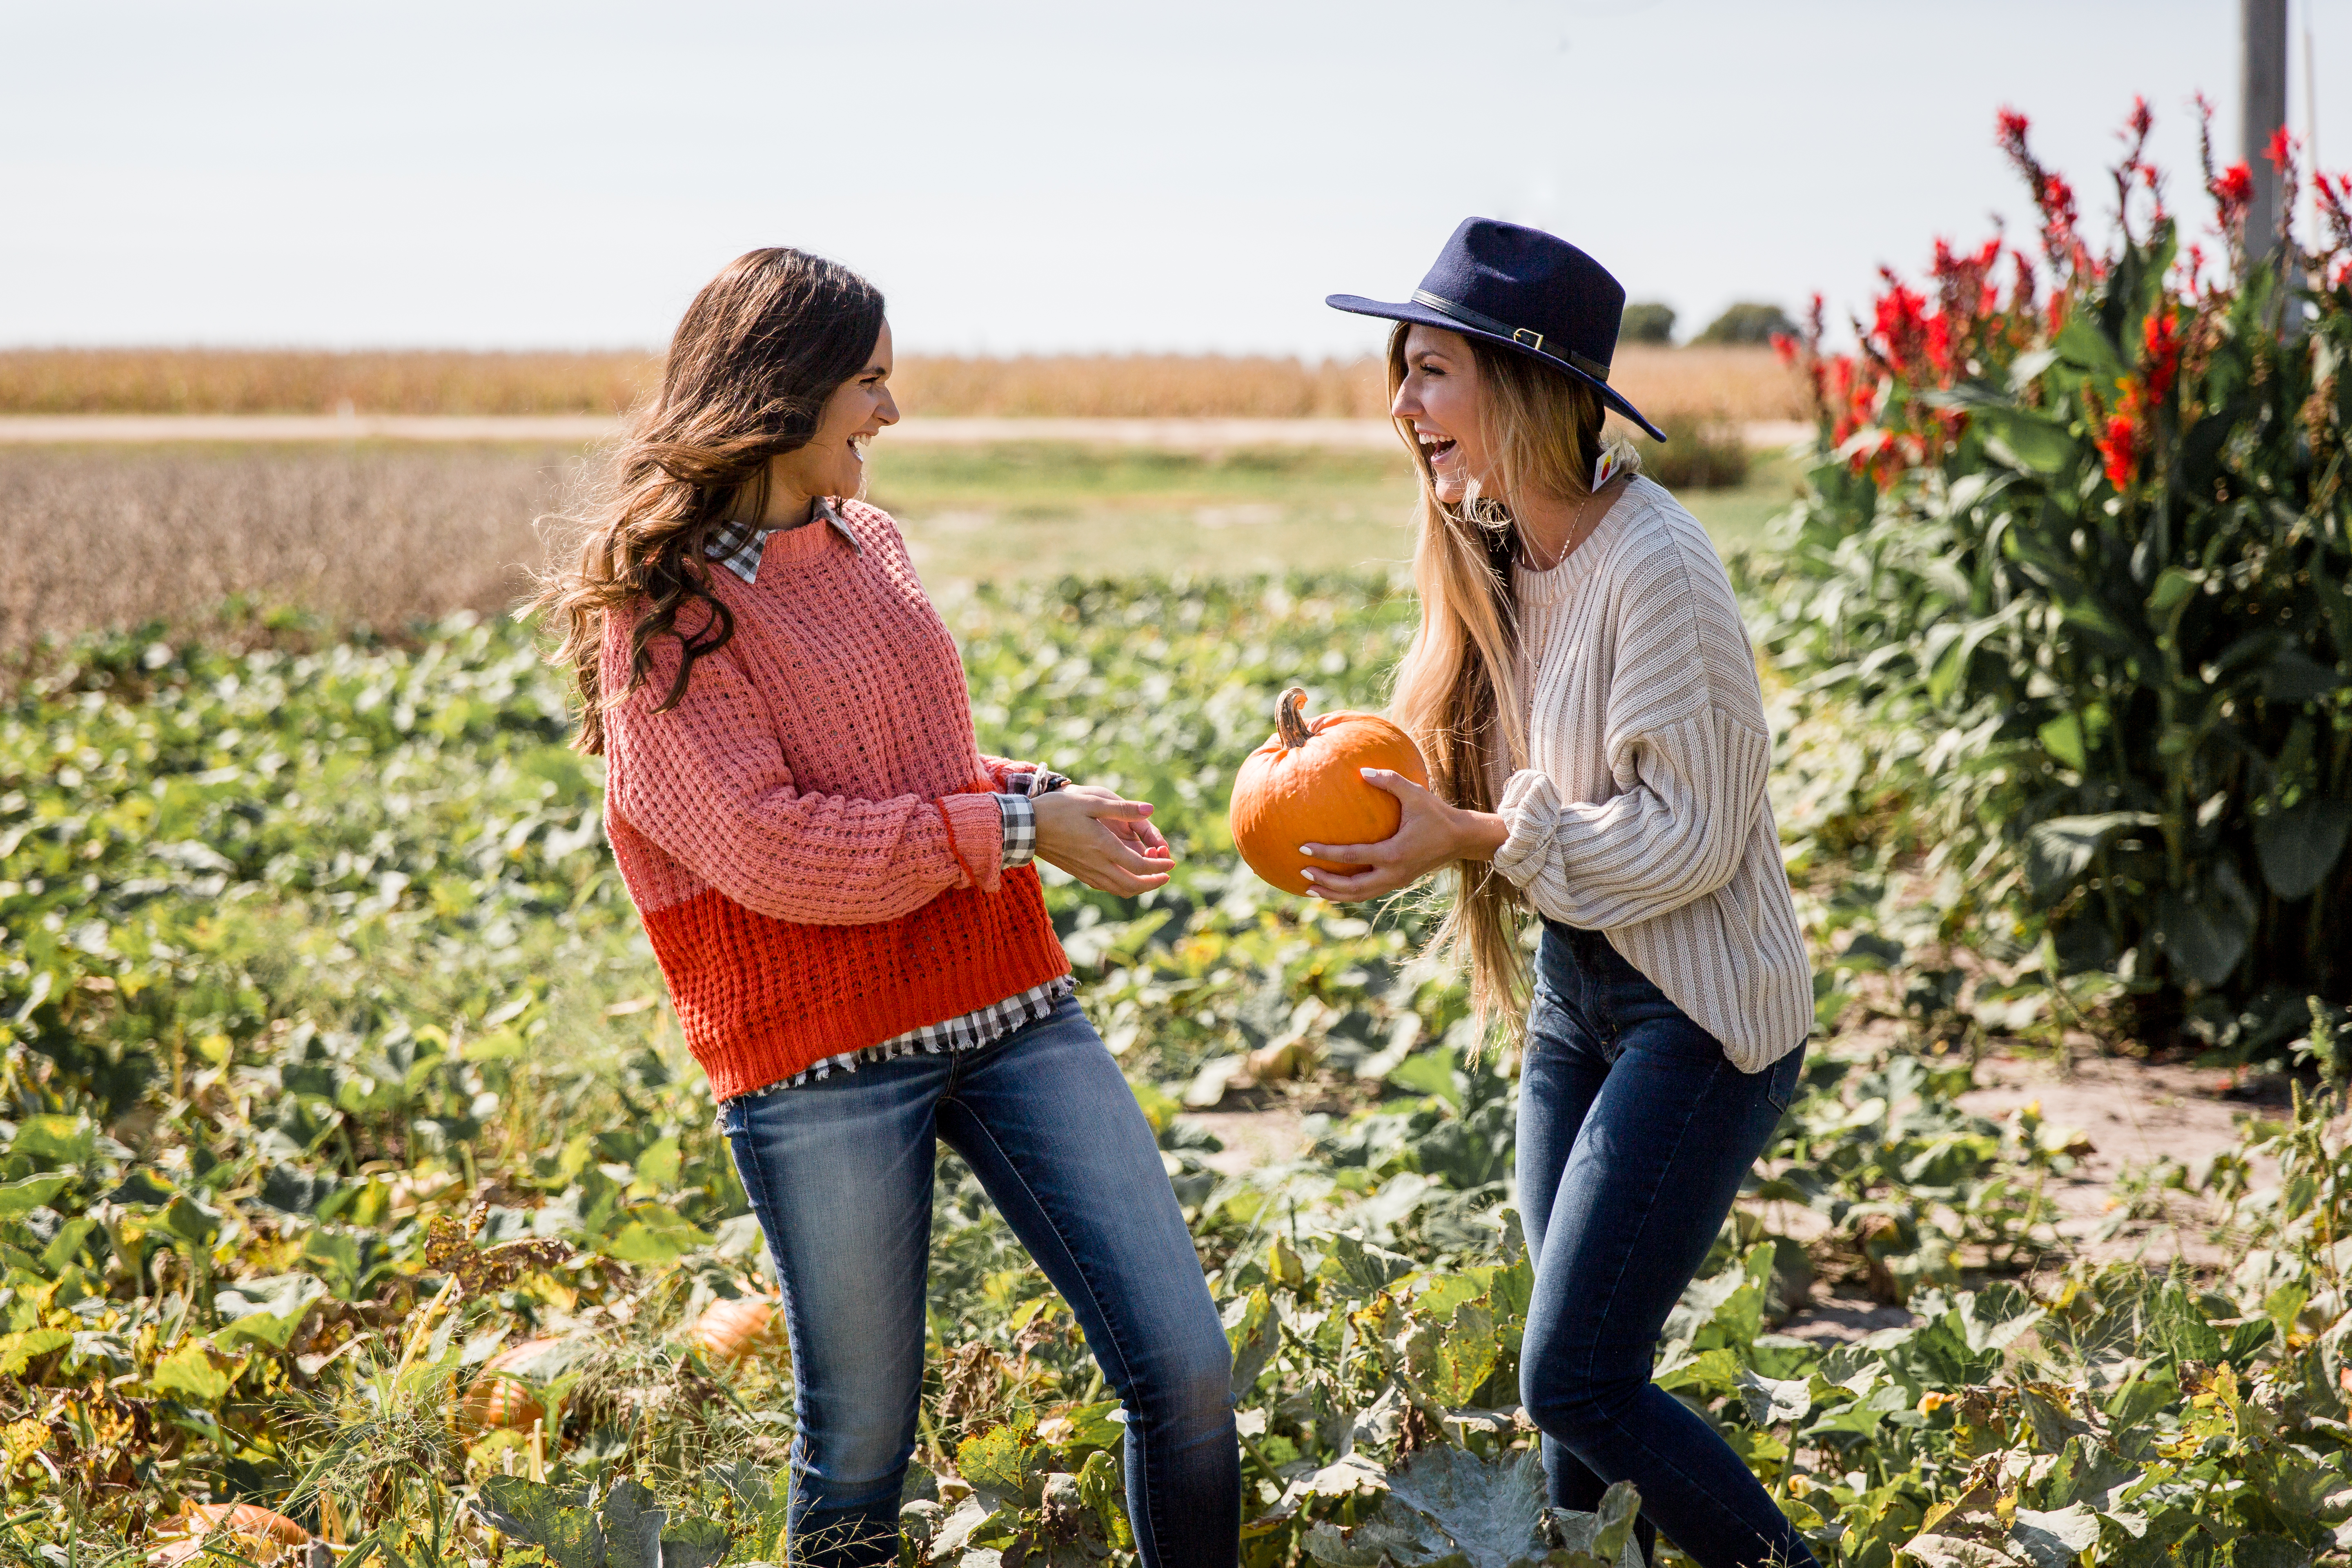 A trip to the pumpkin patch that promises good times with good outfits.